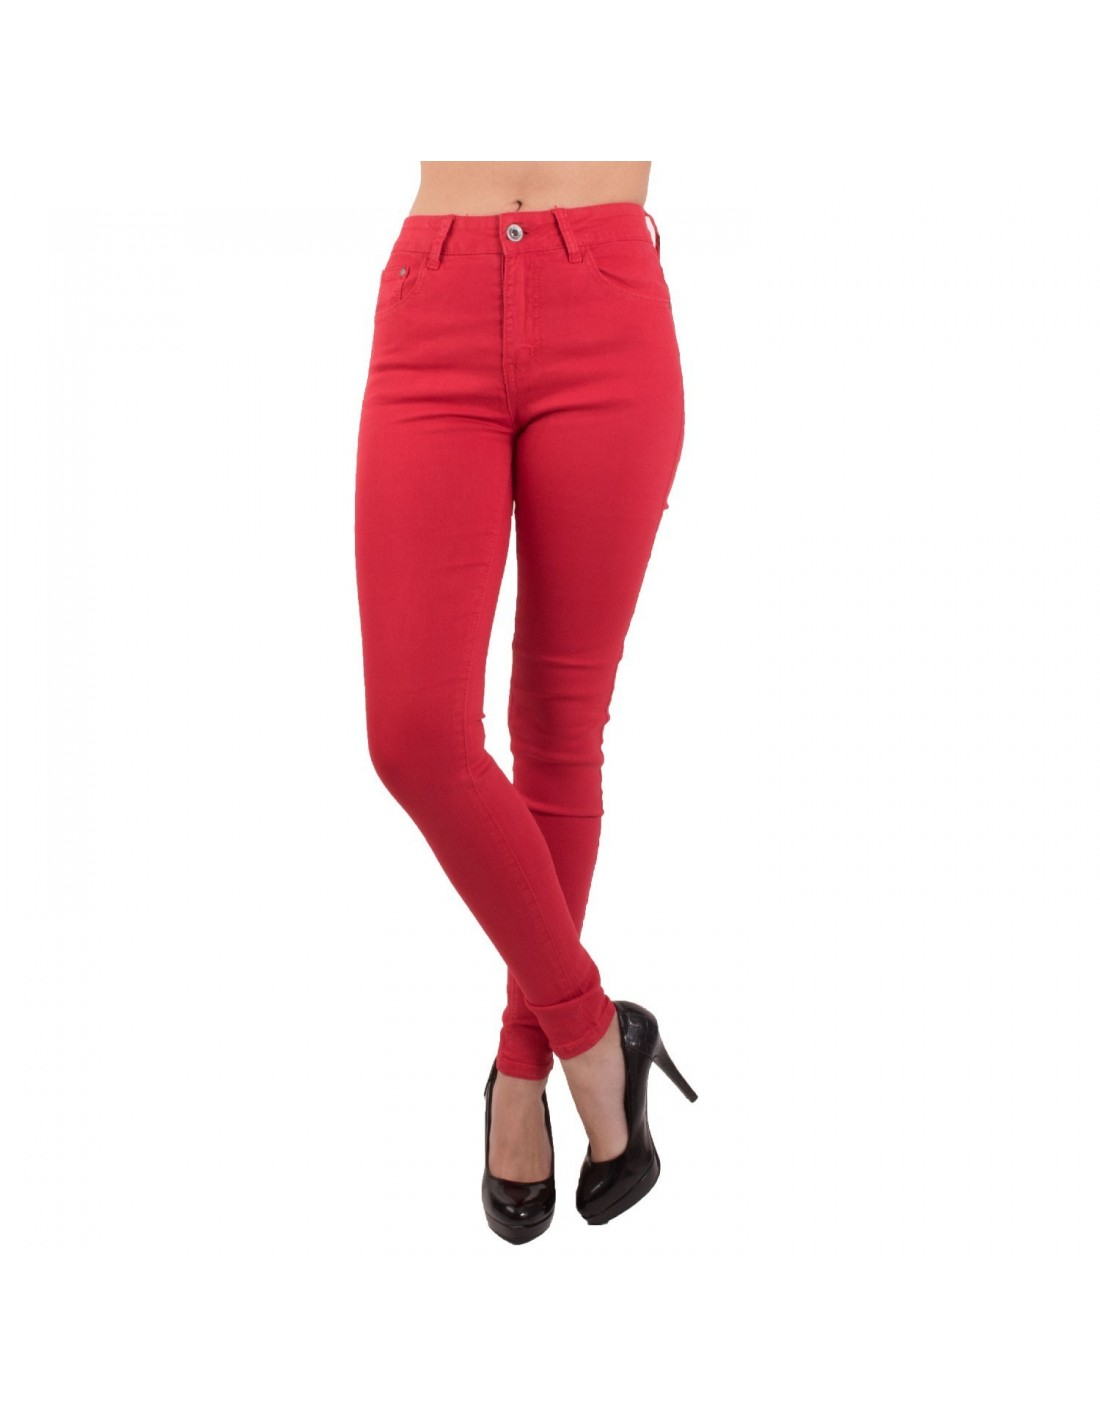 Jean femme rouge coupe skinny slim taille haute stretch élasthanne